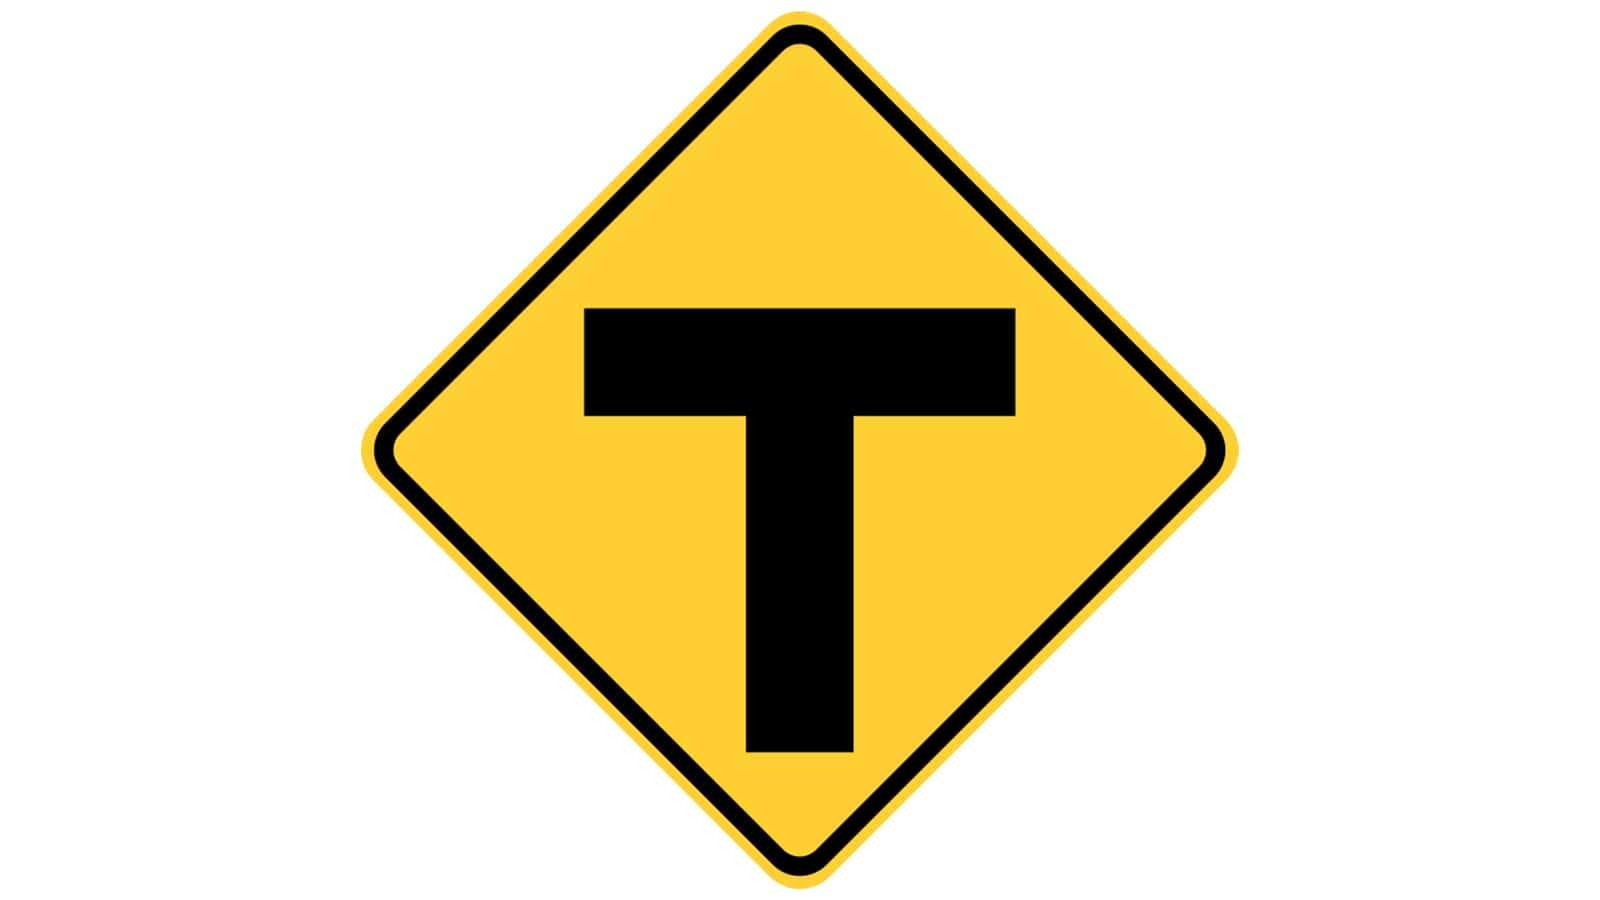 Warning sign T-Roads